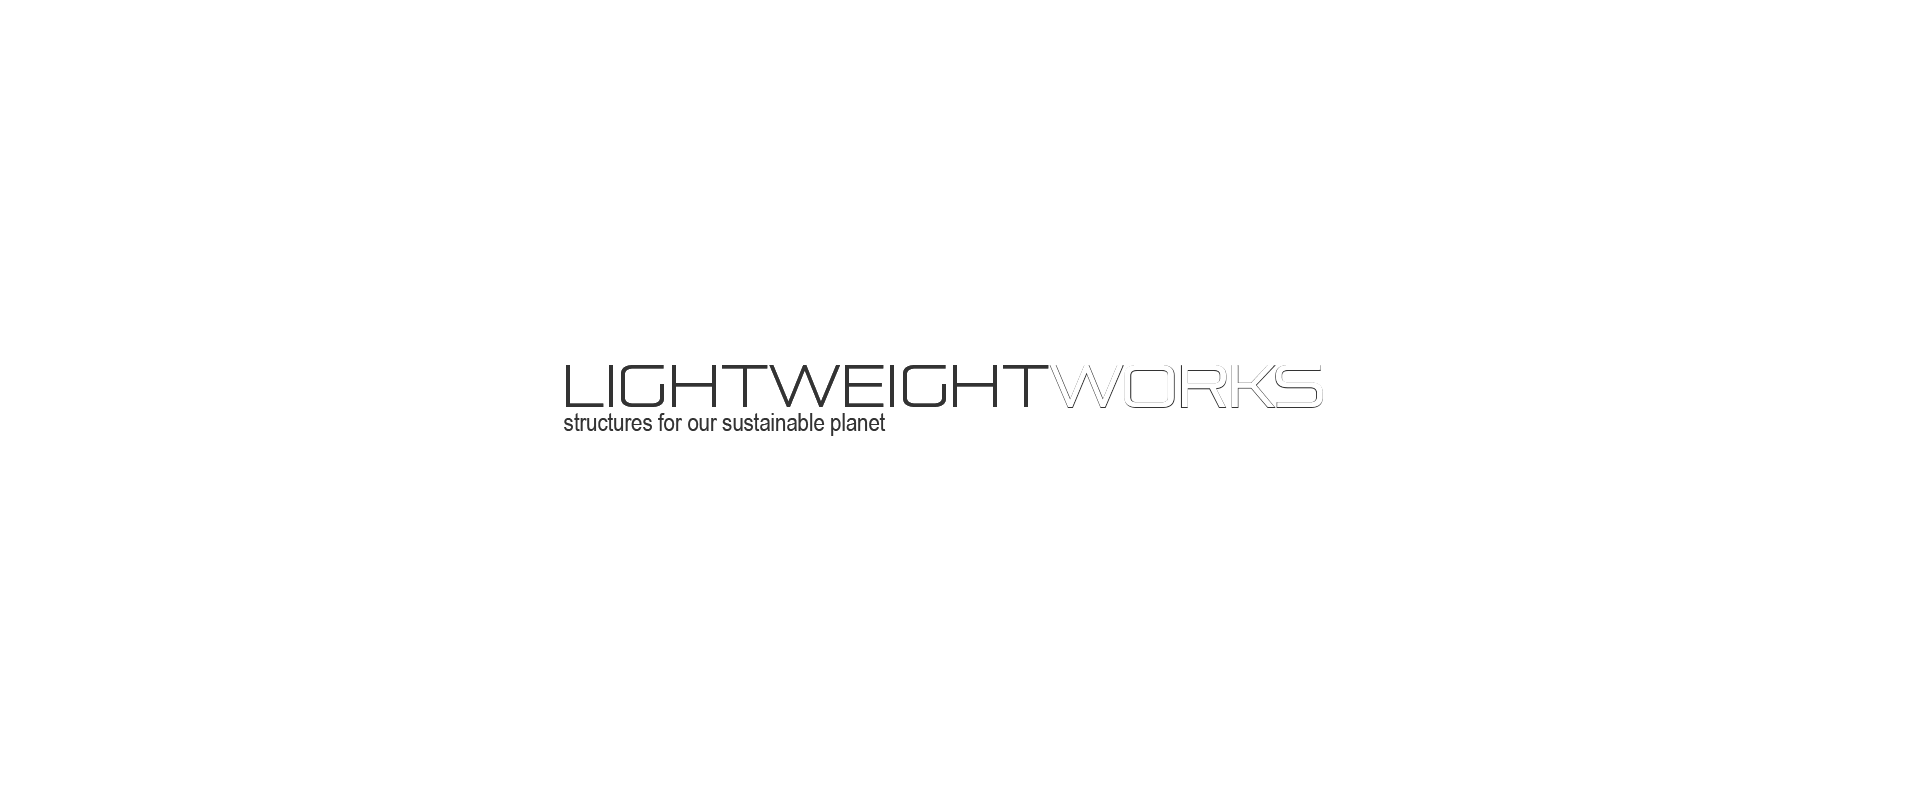 Lightweightworks | structures for our sustainable planet